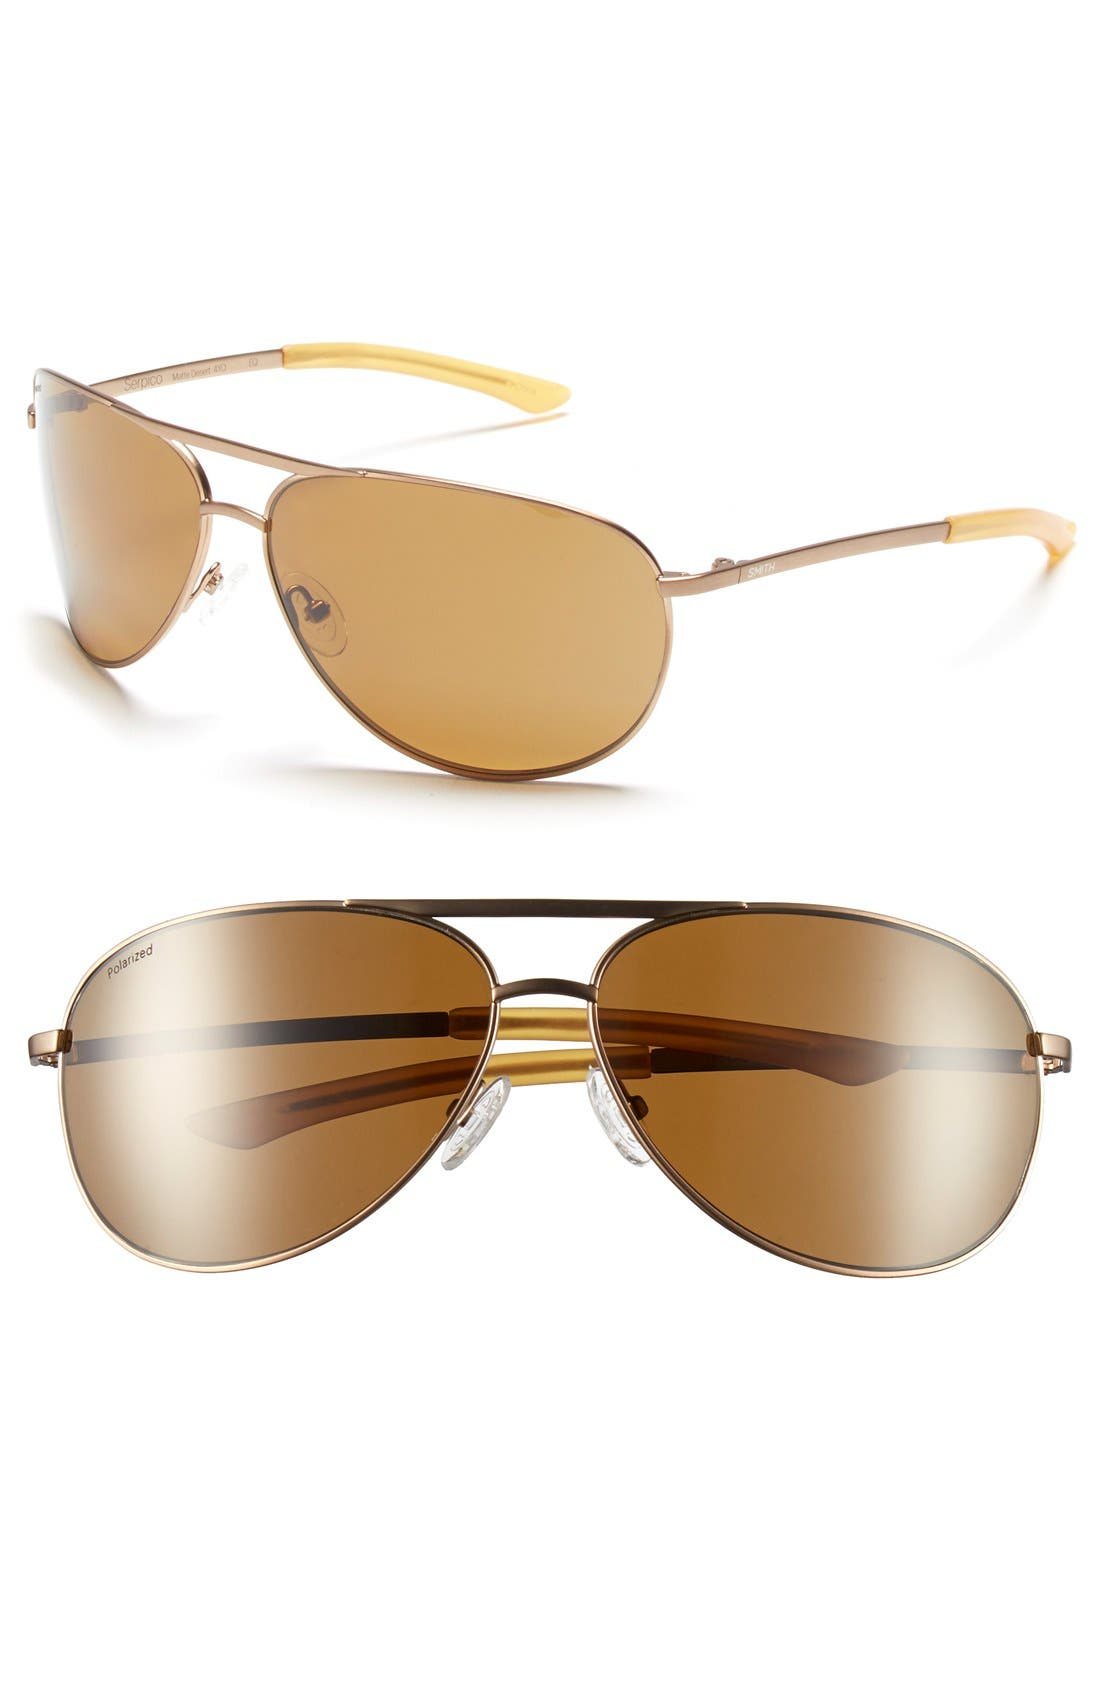 Serpico 65mm Polarized Aviator Sunglasses,                         Main,                         color, Matte Desert/ Polar Brown